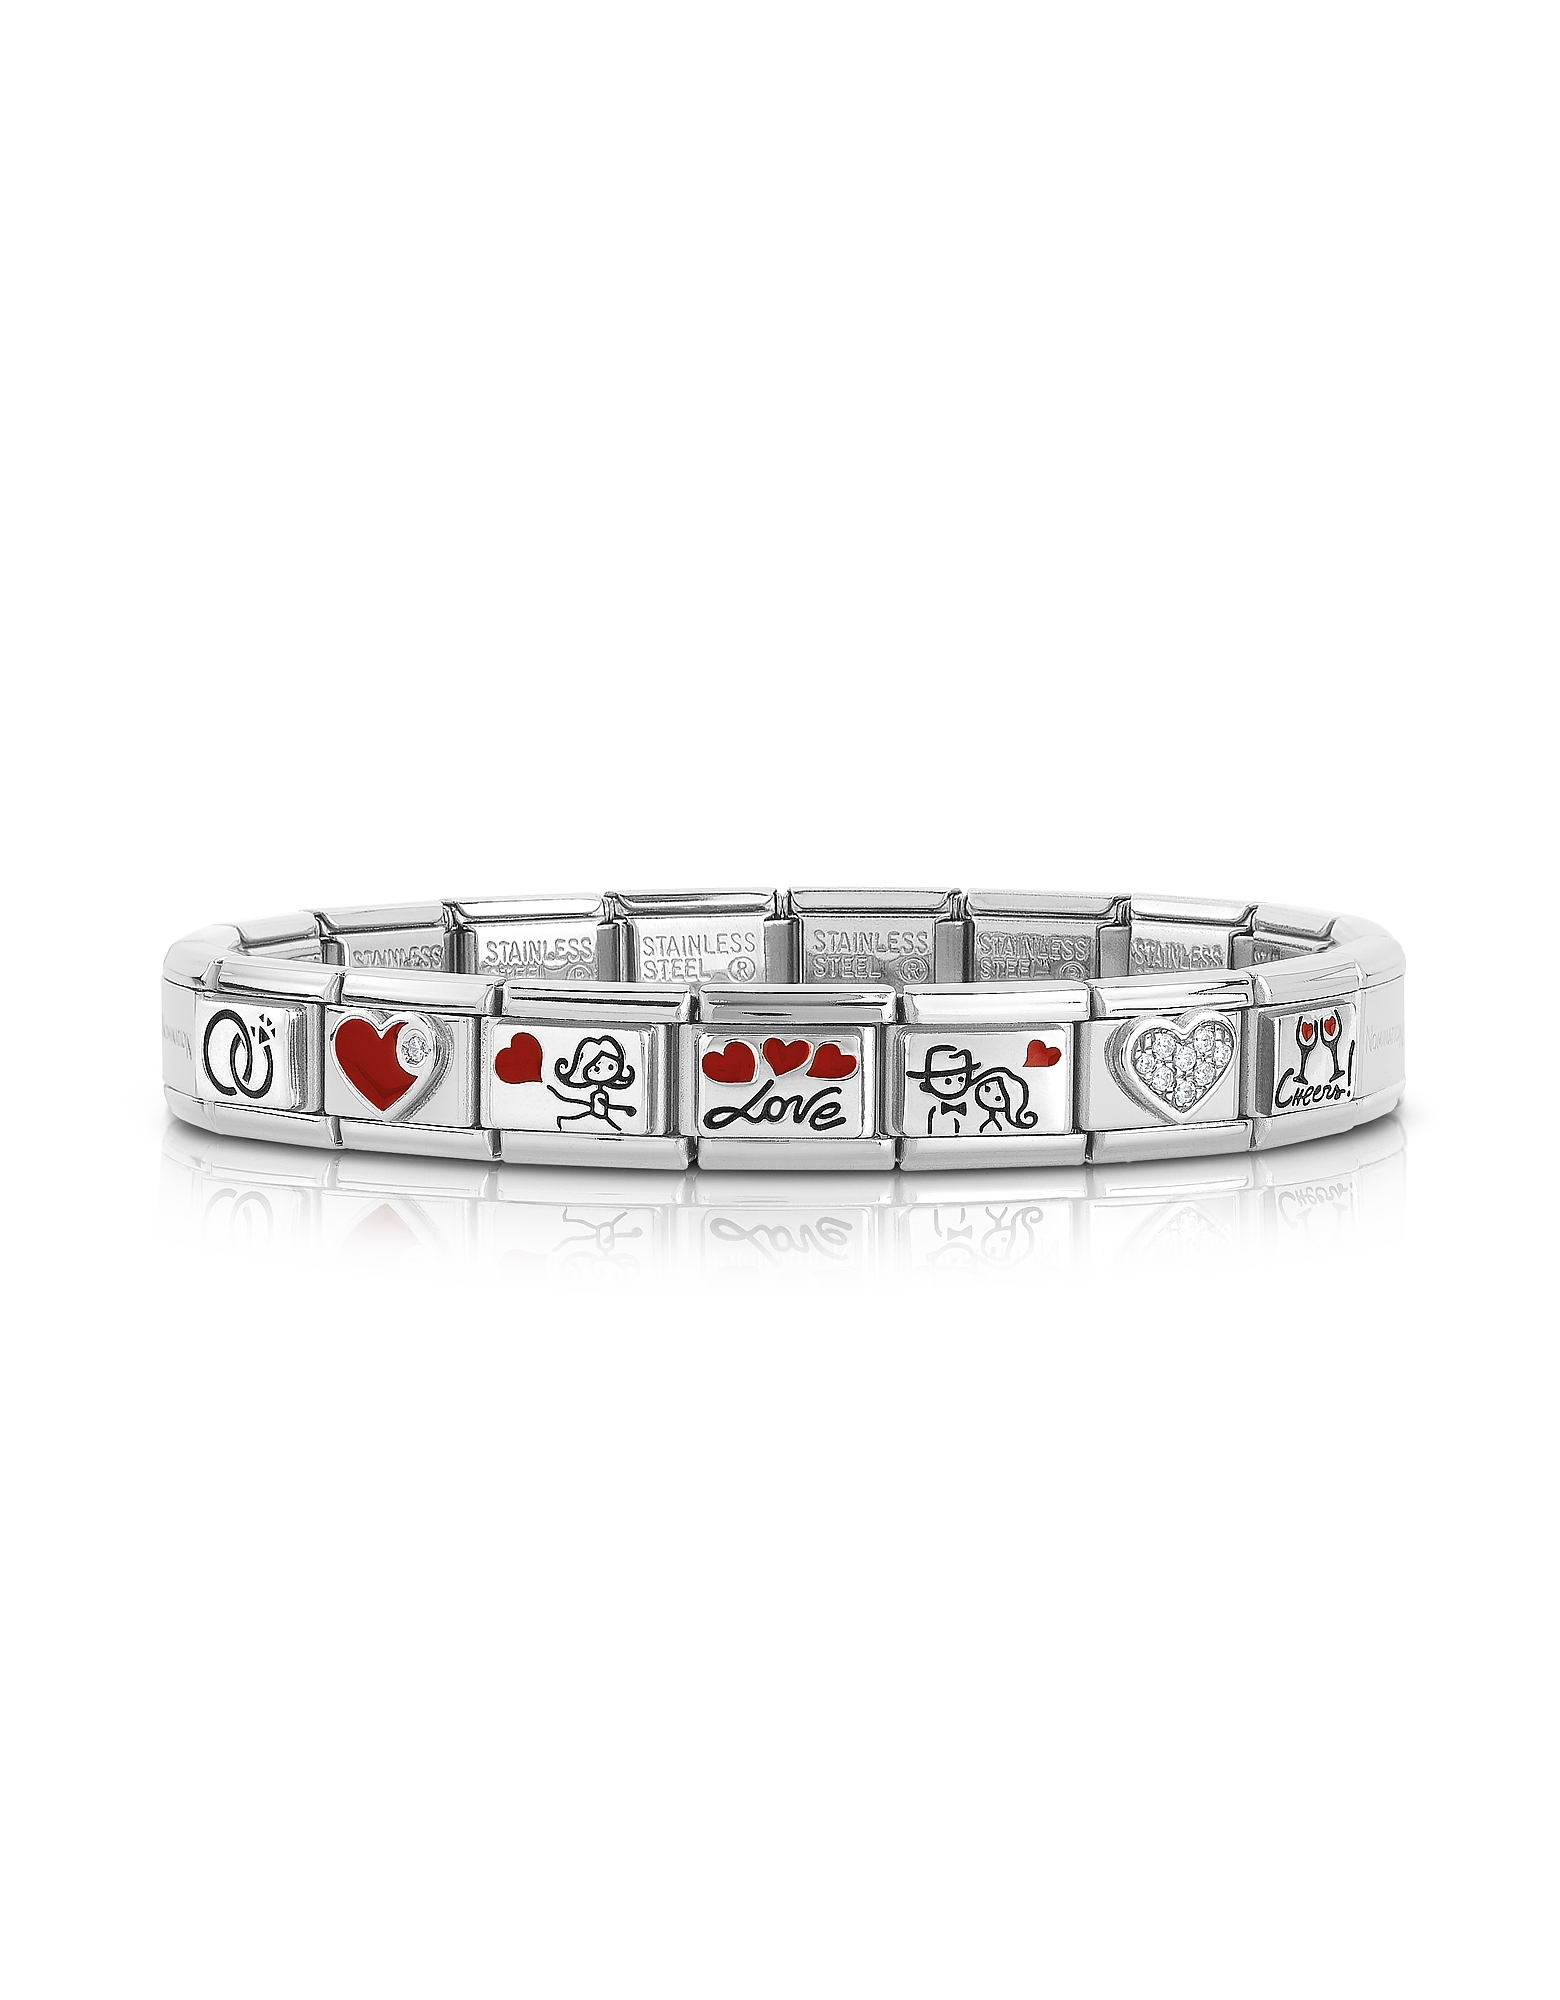 Nomination Bracelets, Wedding Stainless Steel Bracelet w/Stearling Silver Symbols and Cubic Zirconia